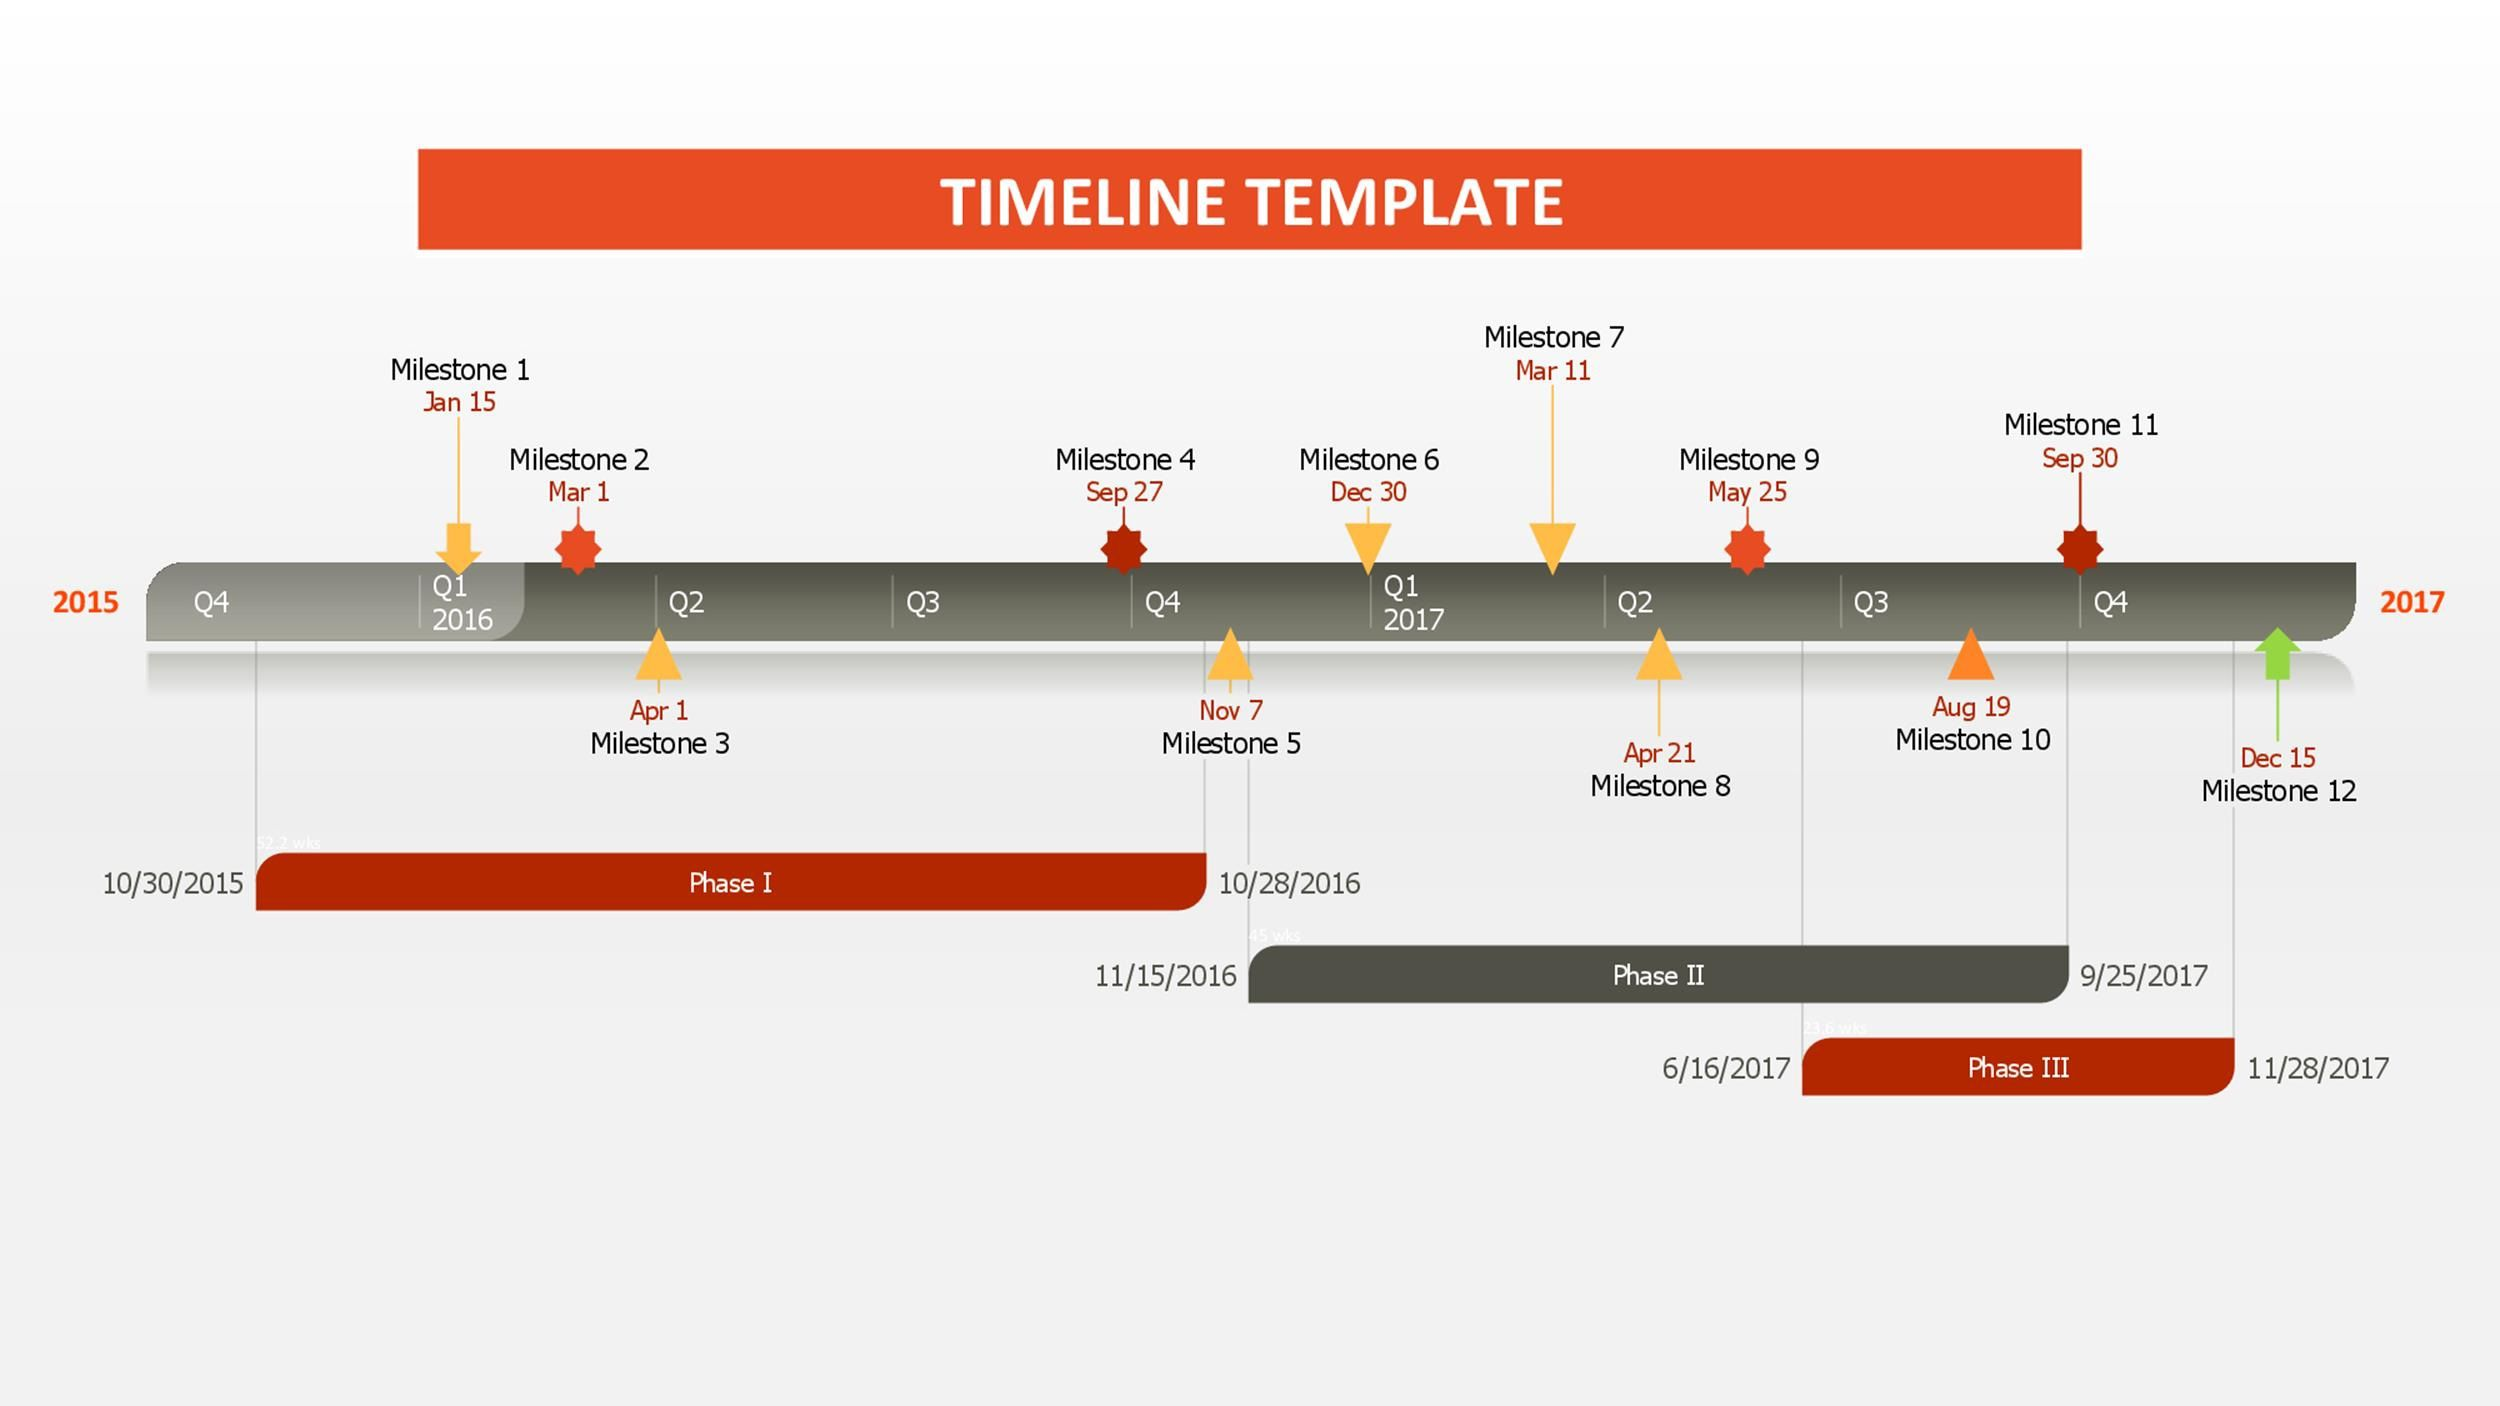 006 Top Timeline Template In Word Picture  2010 Wordpres FreeFull